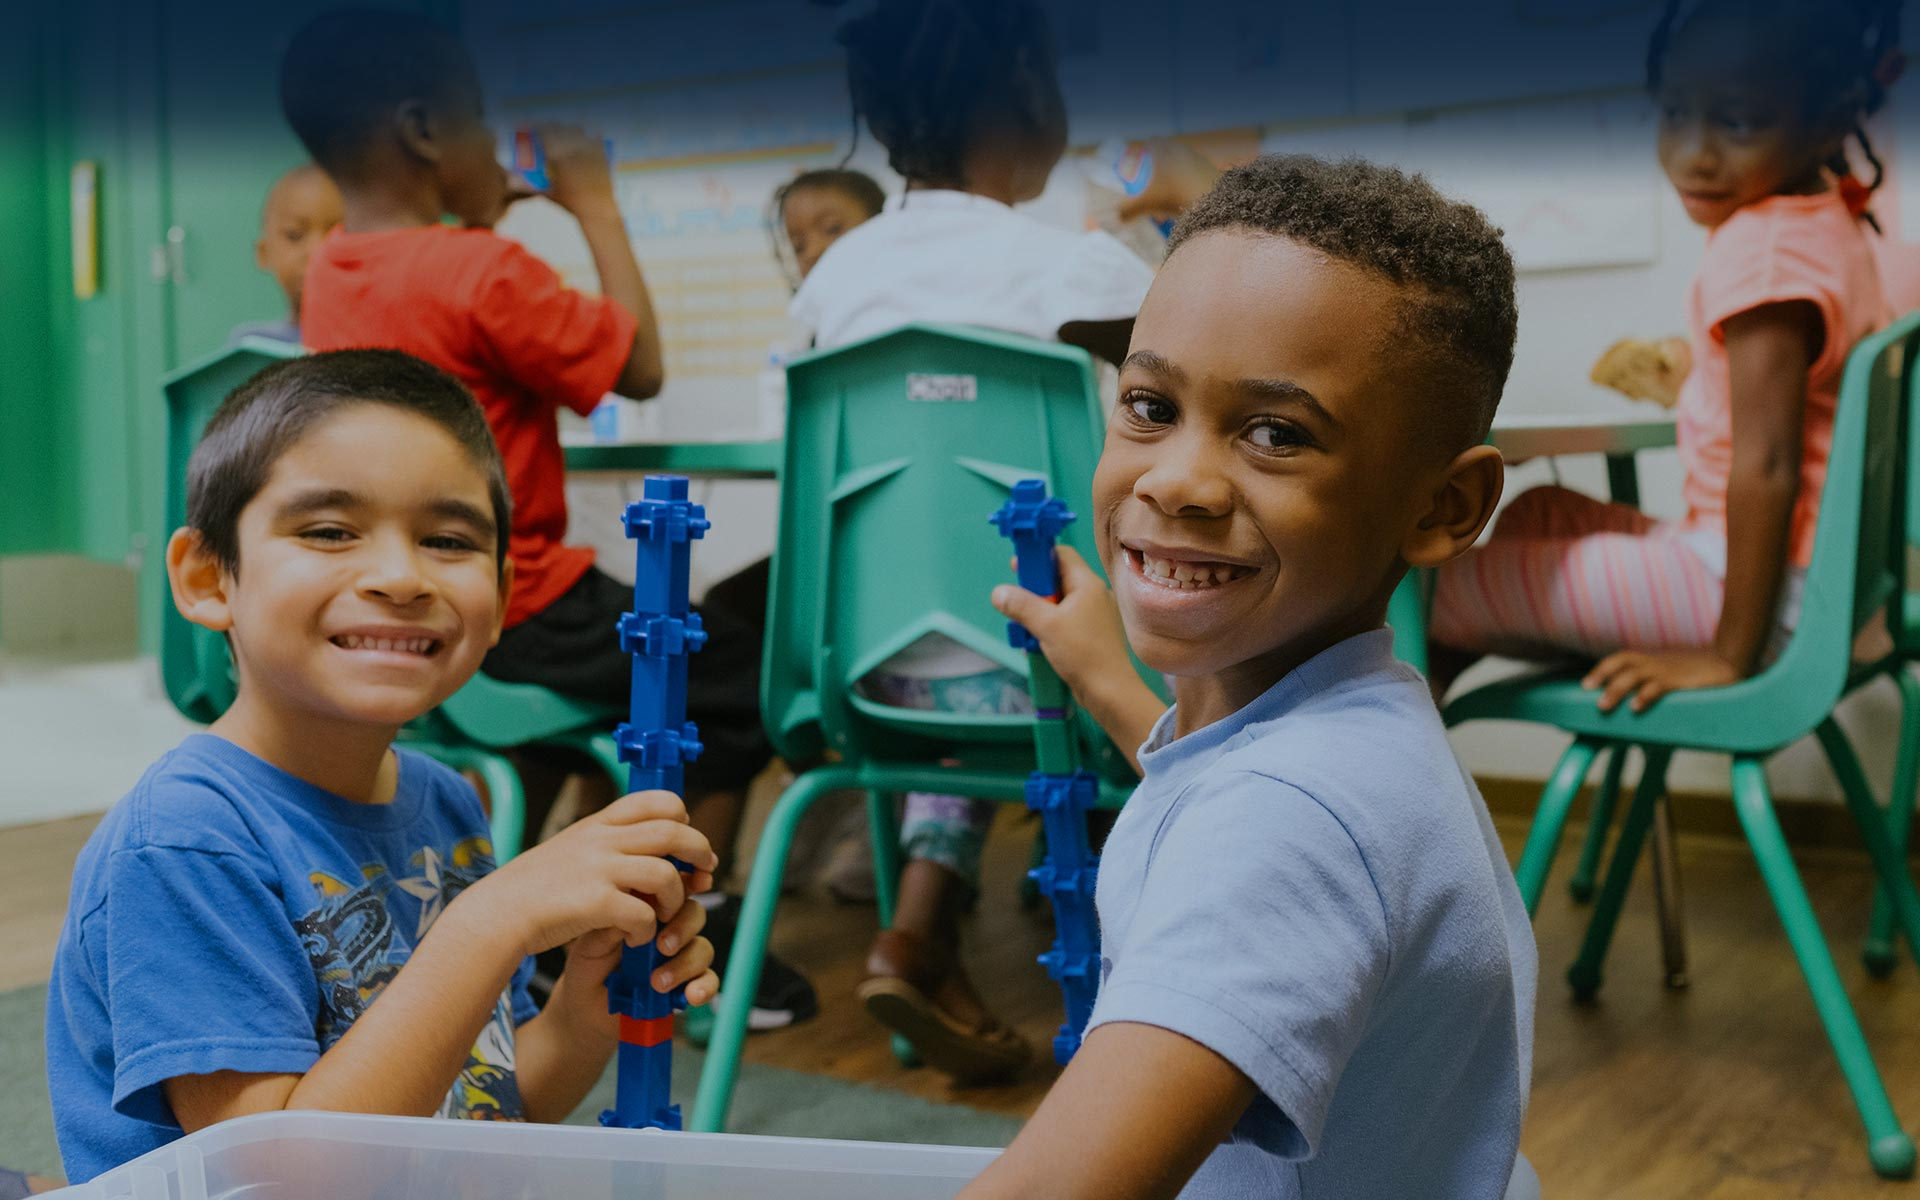 Two young boys smiling and playing with construction toys together.